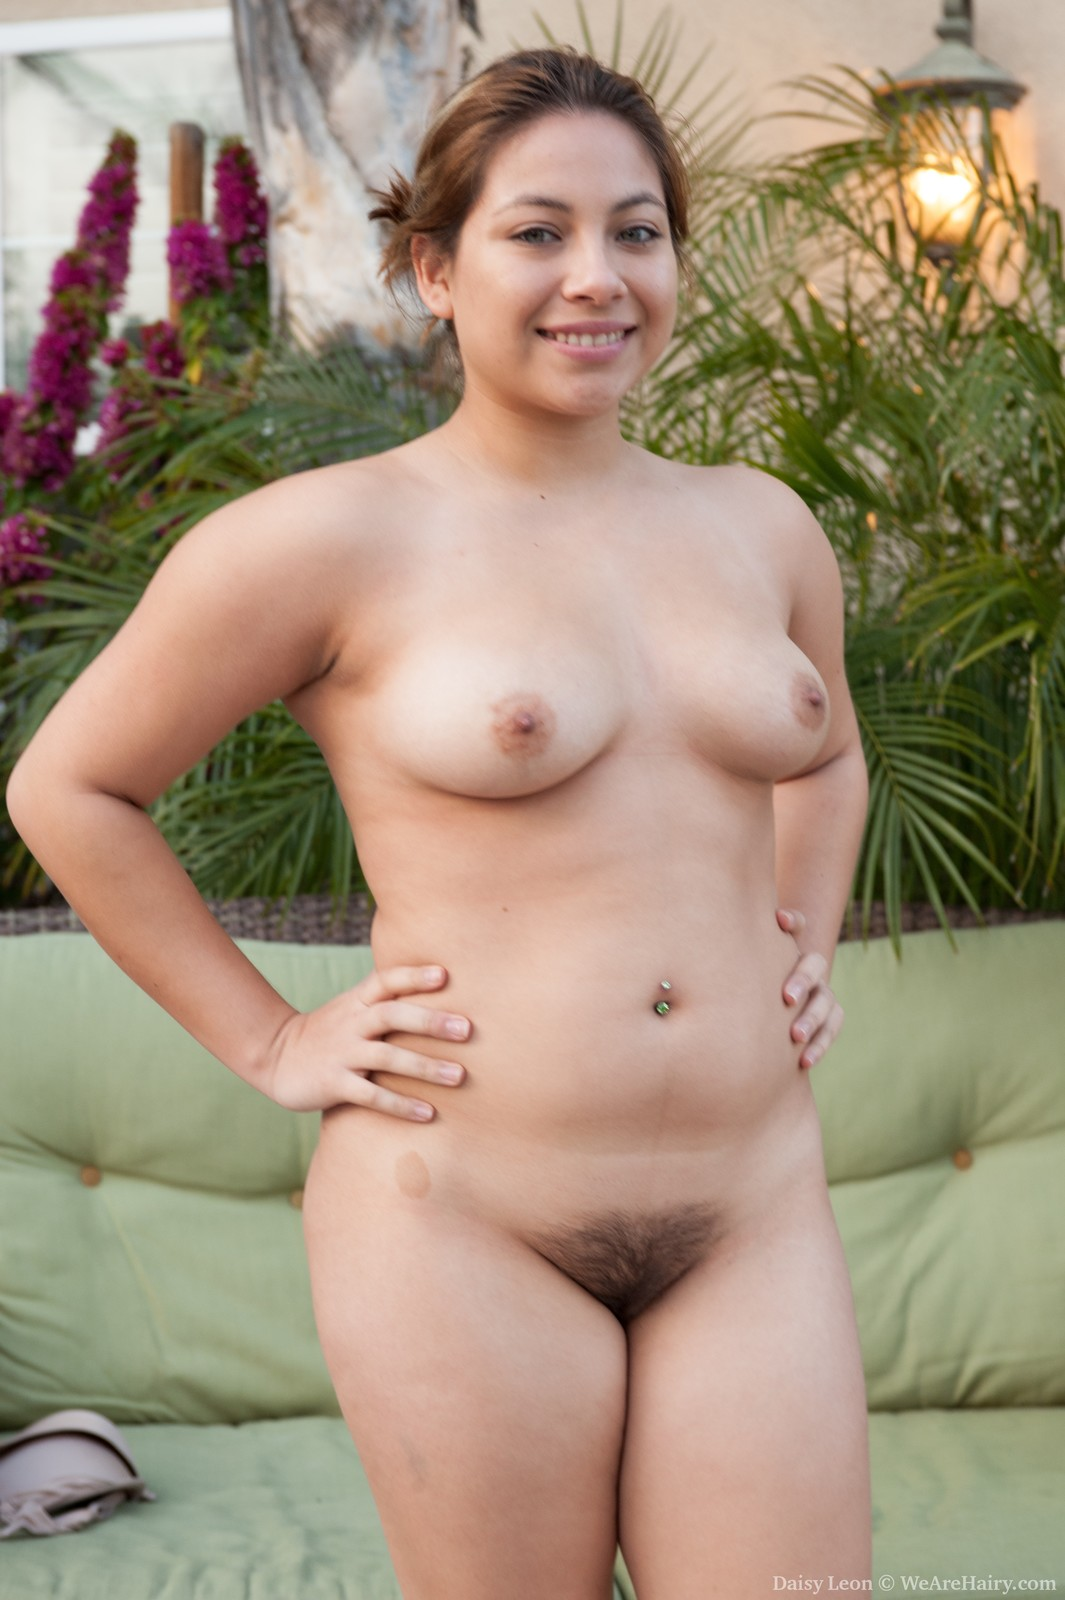 young women disabled and naked